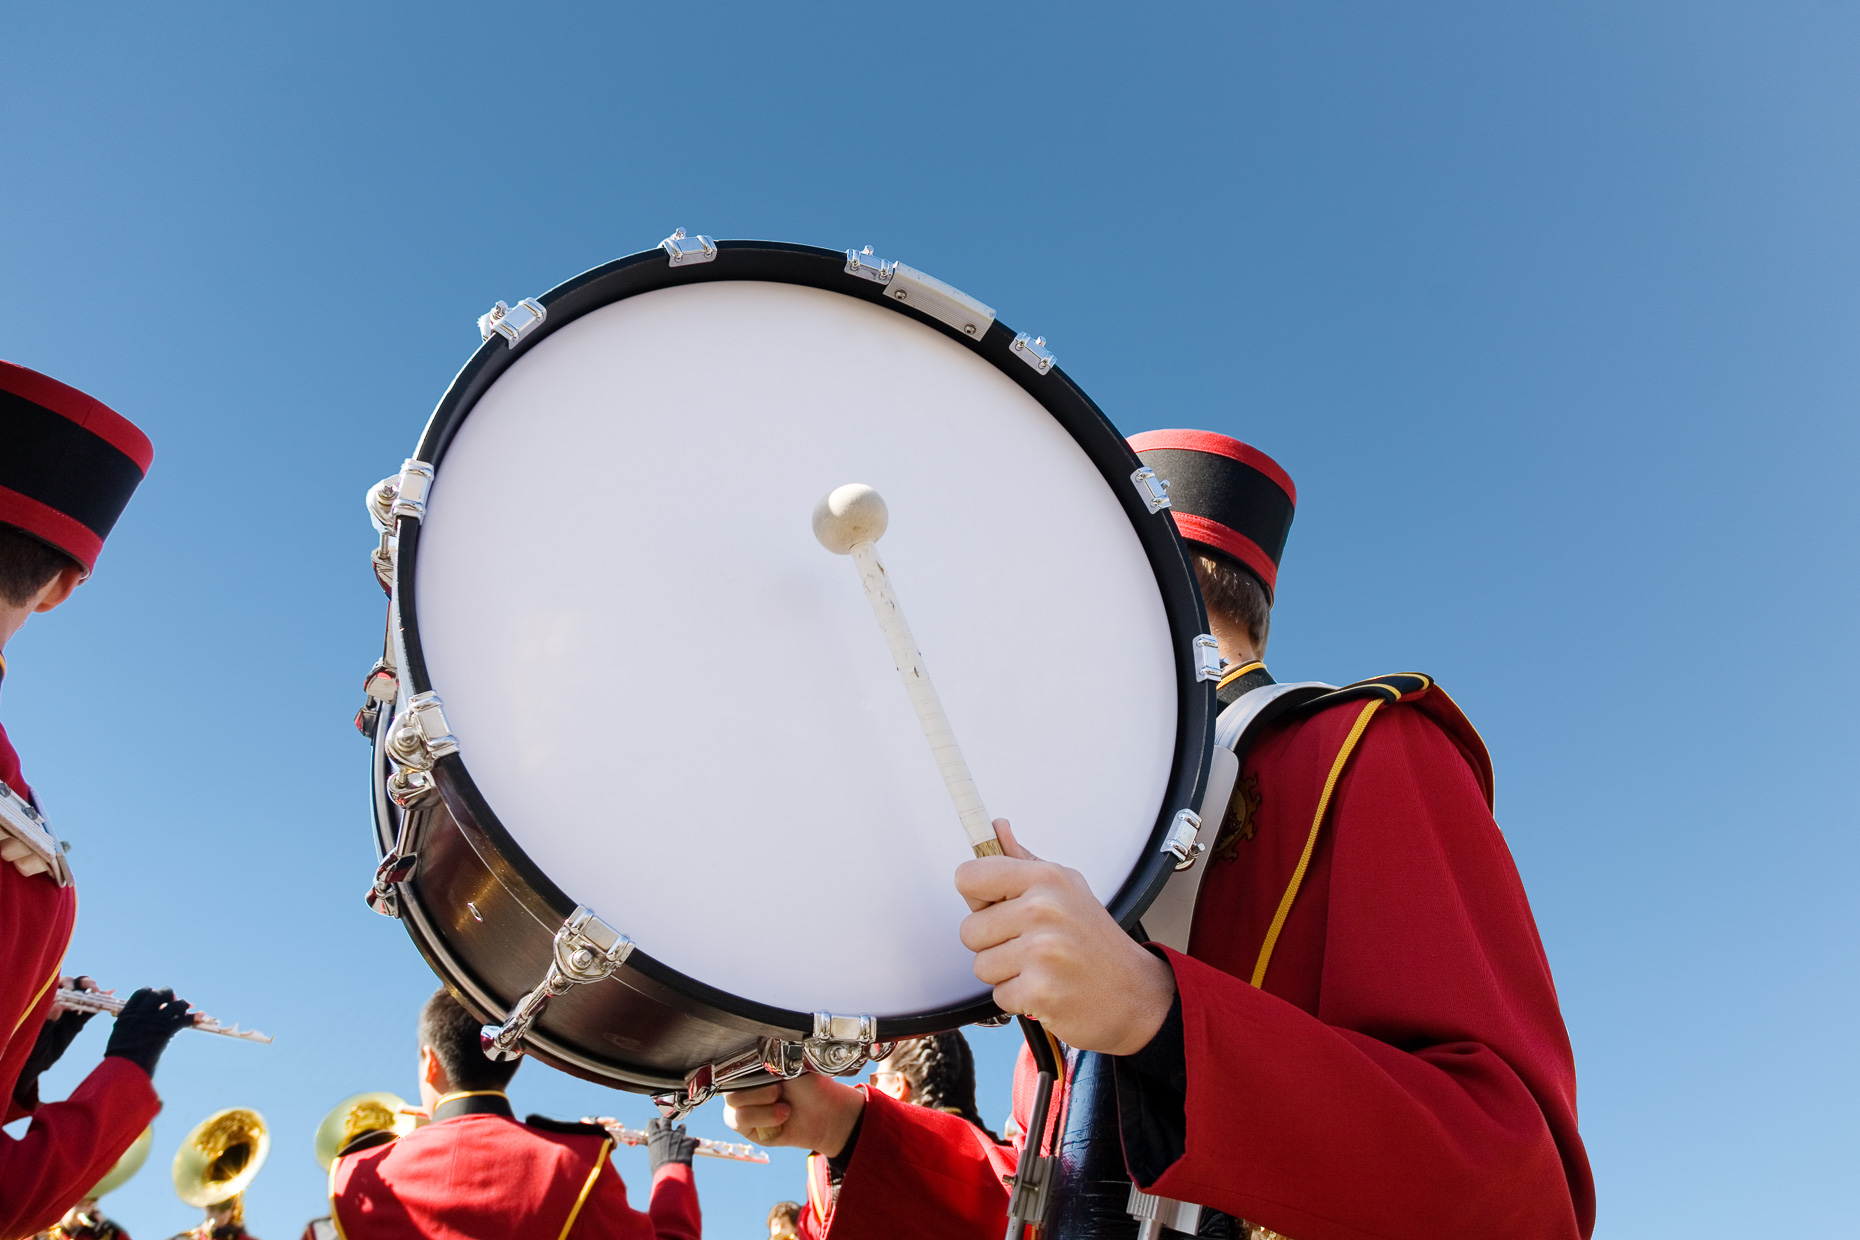 Bass drum of marching band being held by band member in uniform against blue sky by David Zaitz